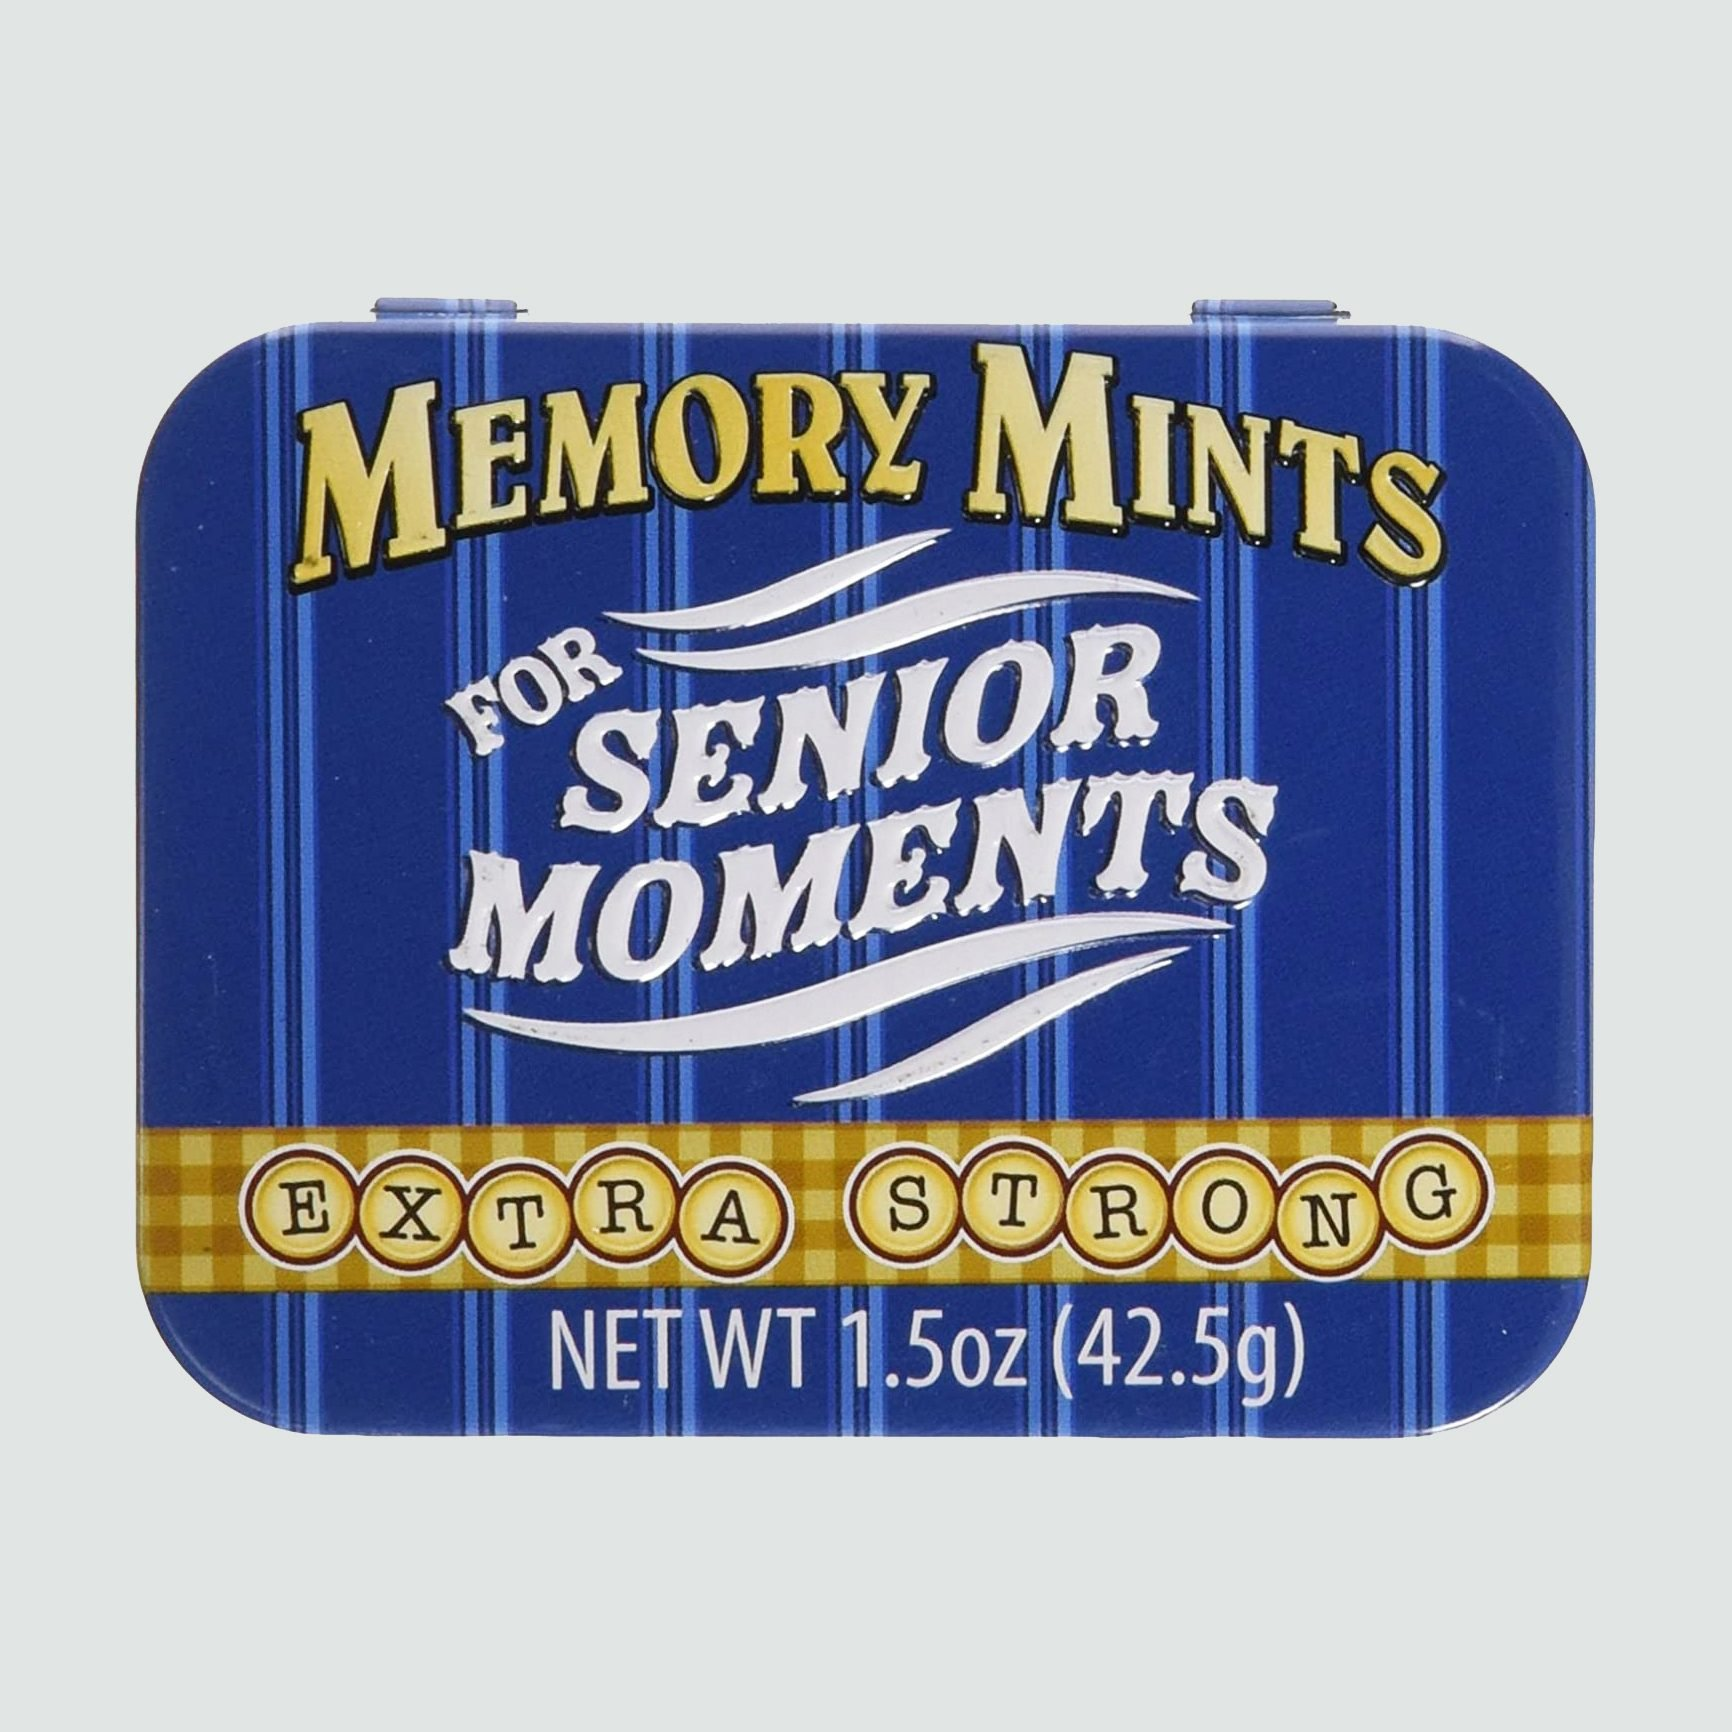 Memory Mints for Senior Moments